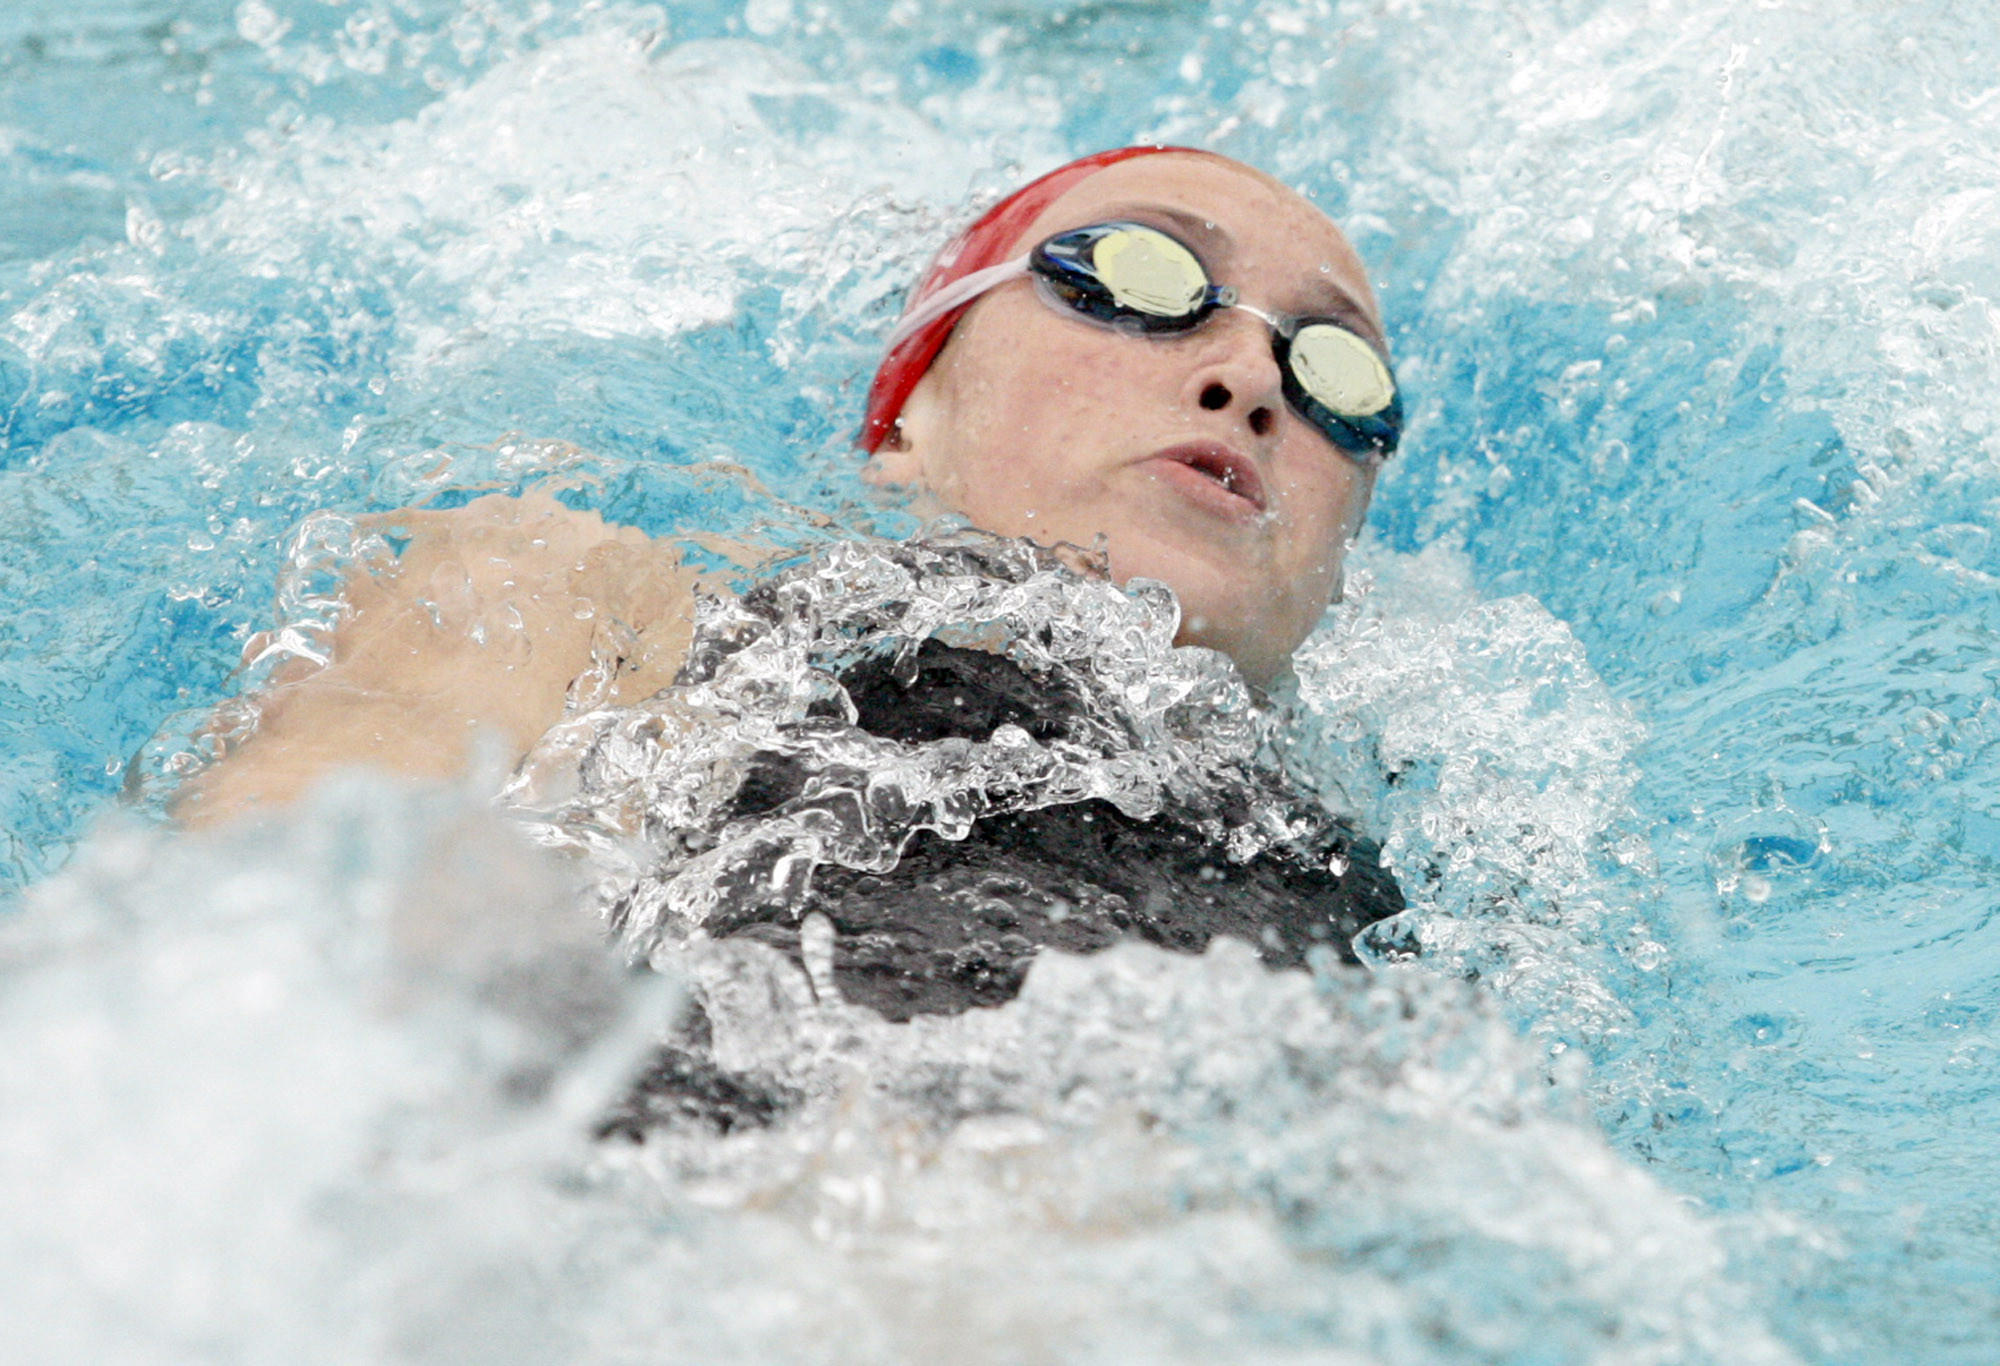 FSHA's Kirsten Vose participates in the individual medley during a swim meet L.A. Valley College pool in Van Nuys on Tuesday, May 1, 2012.